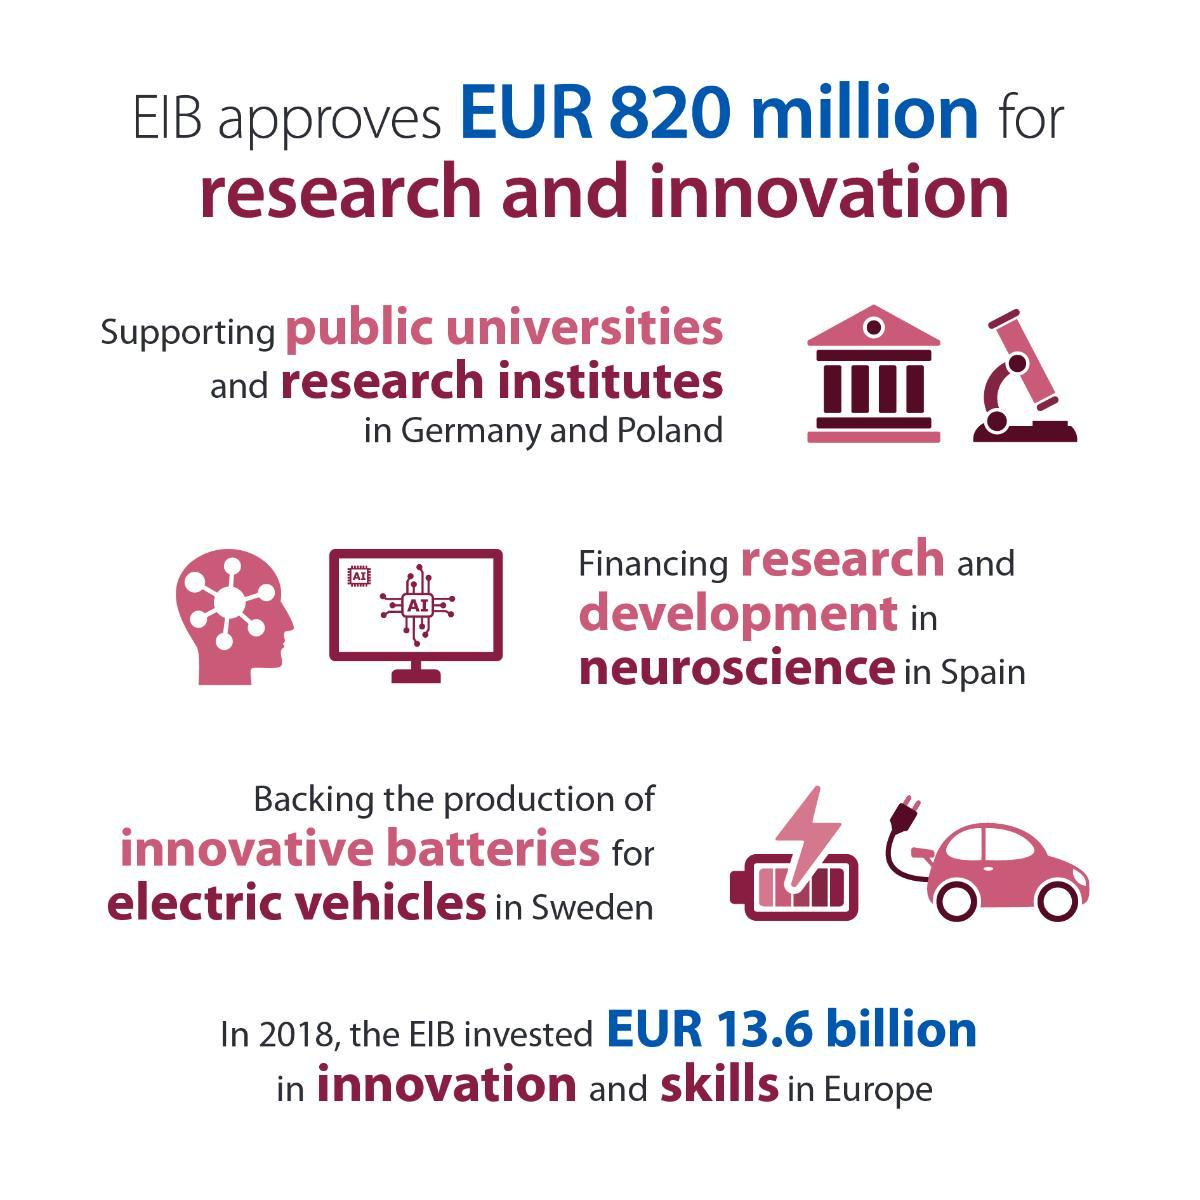 Accelerating research and innovation